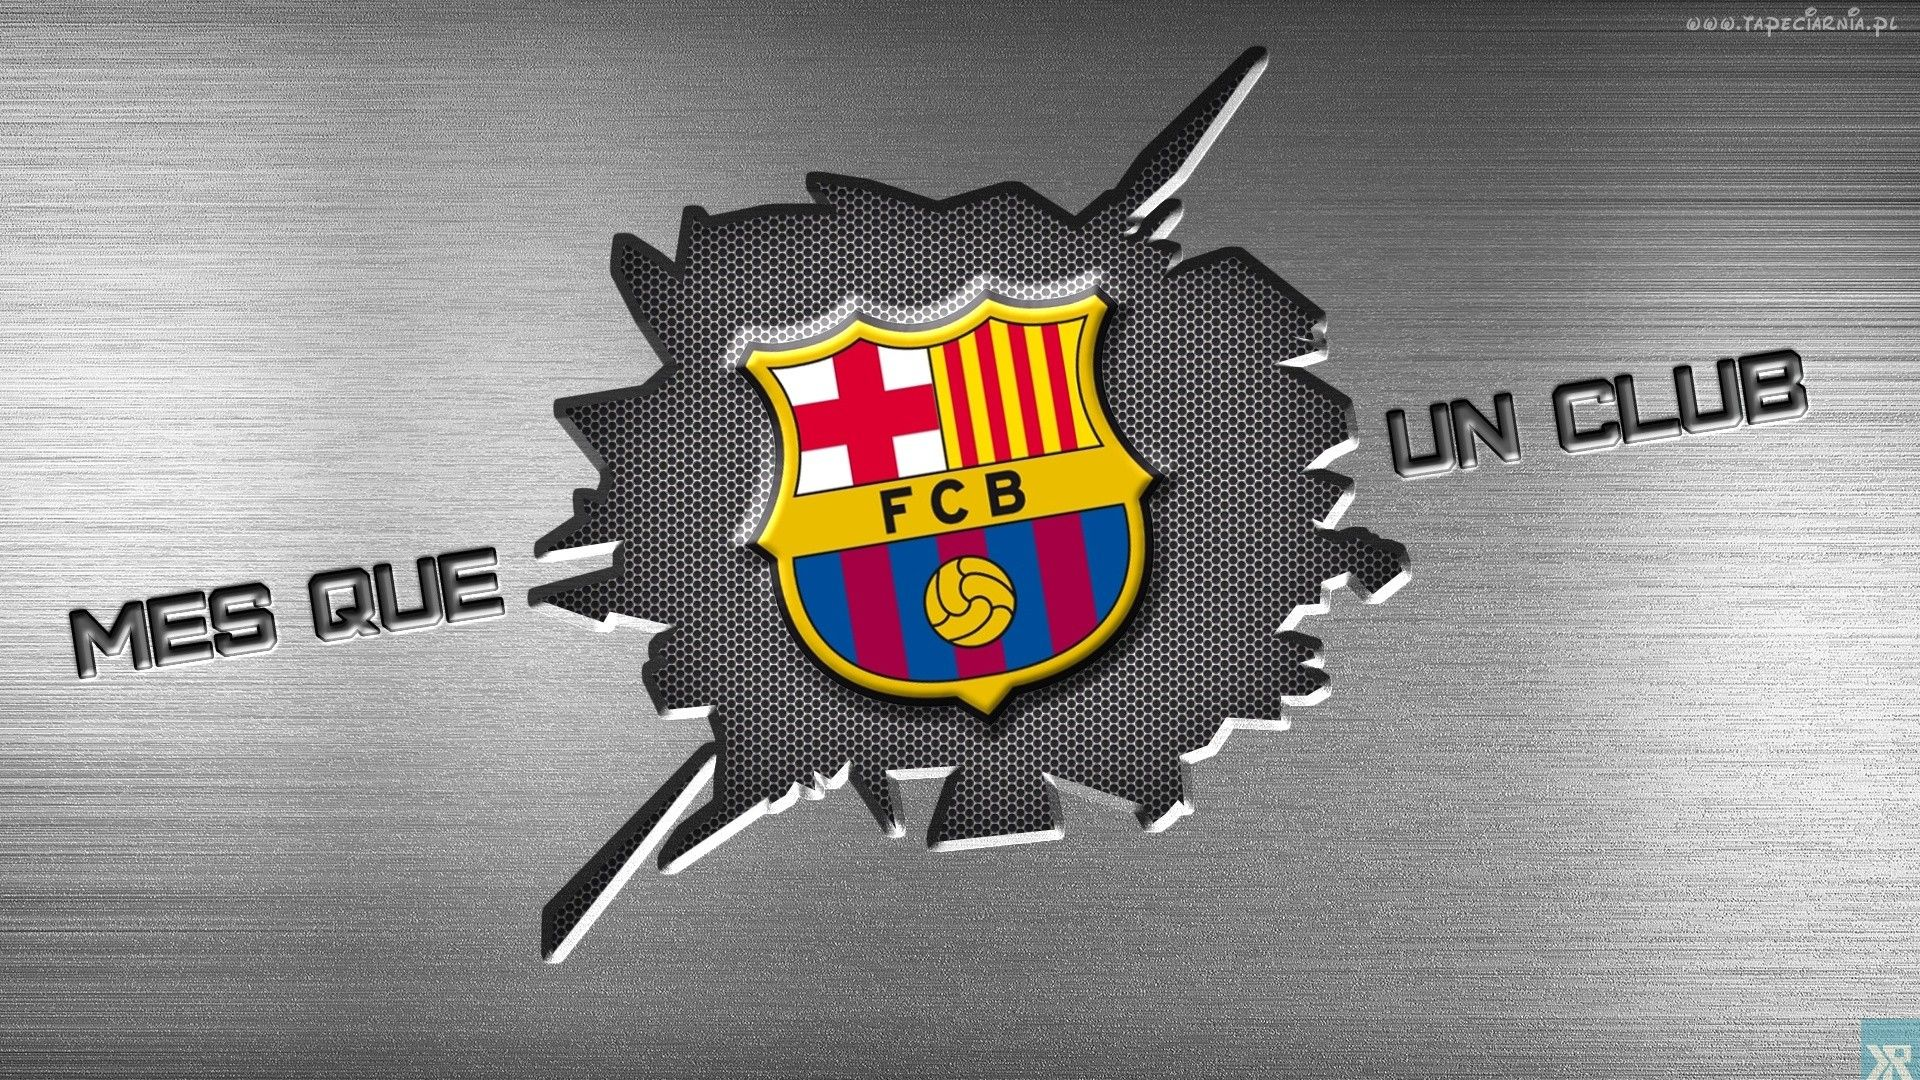 Fondos De Pantalla Del Fútbol Club Barcelona Wallpapers: Download Hd Fc Barcelona Wallpaper For